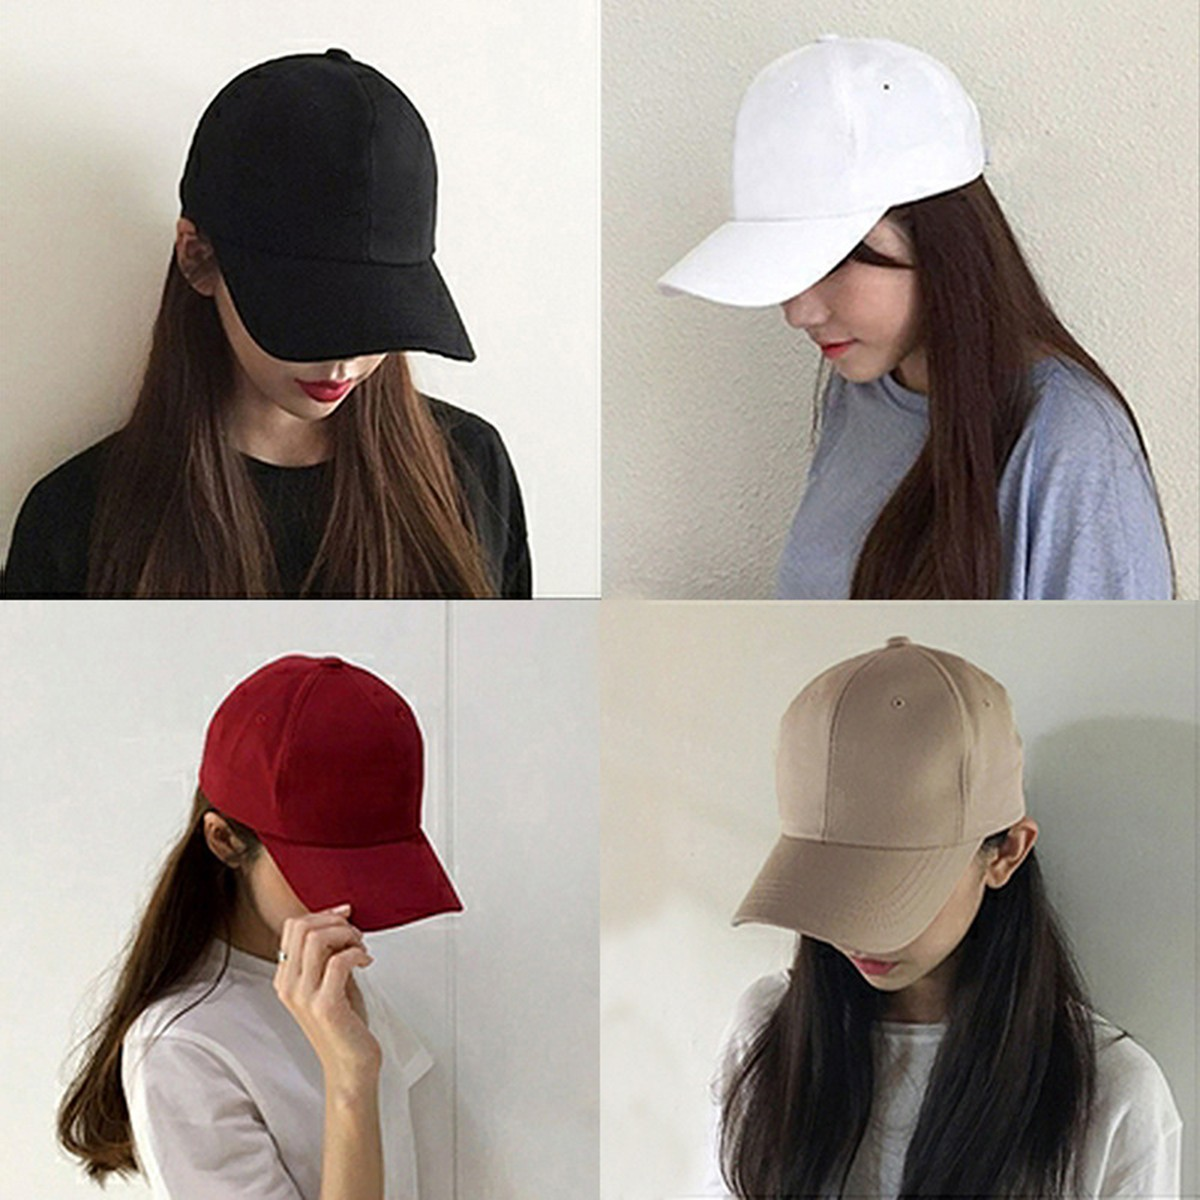 2020 The New Mens Womens Hats Kpop Fashion Casual Baseball Cap Solid Color Black Peaked Cap Versatile Student Hat Sunshade Cap